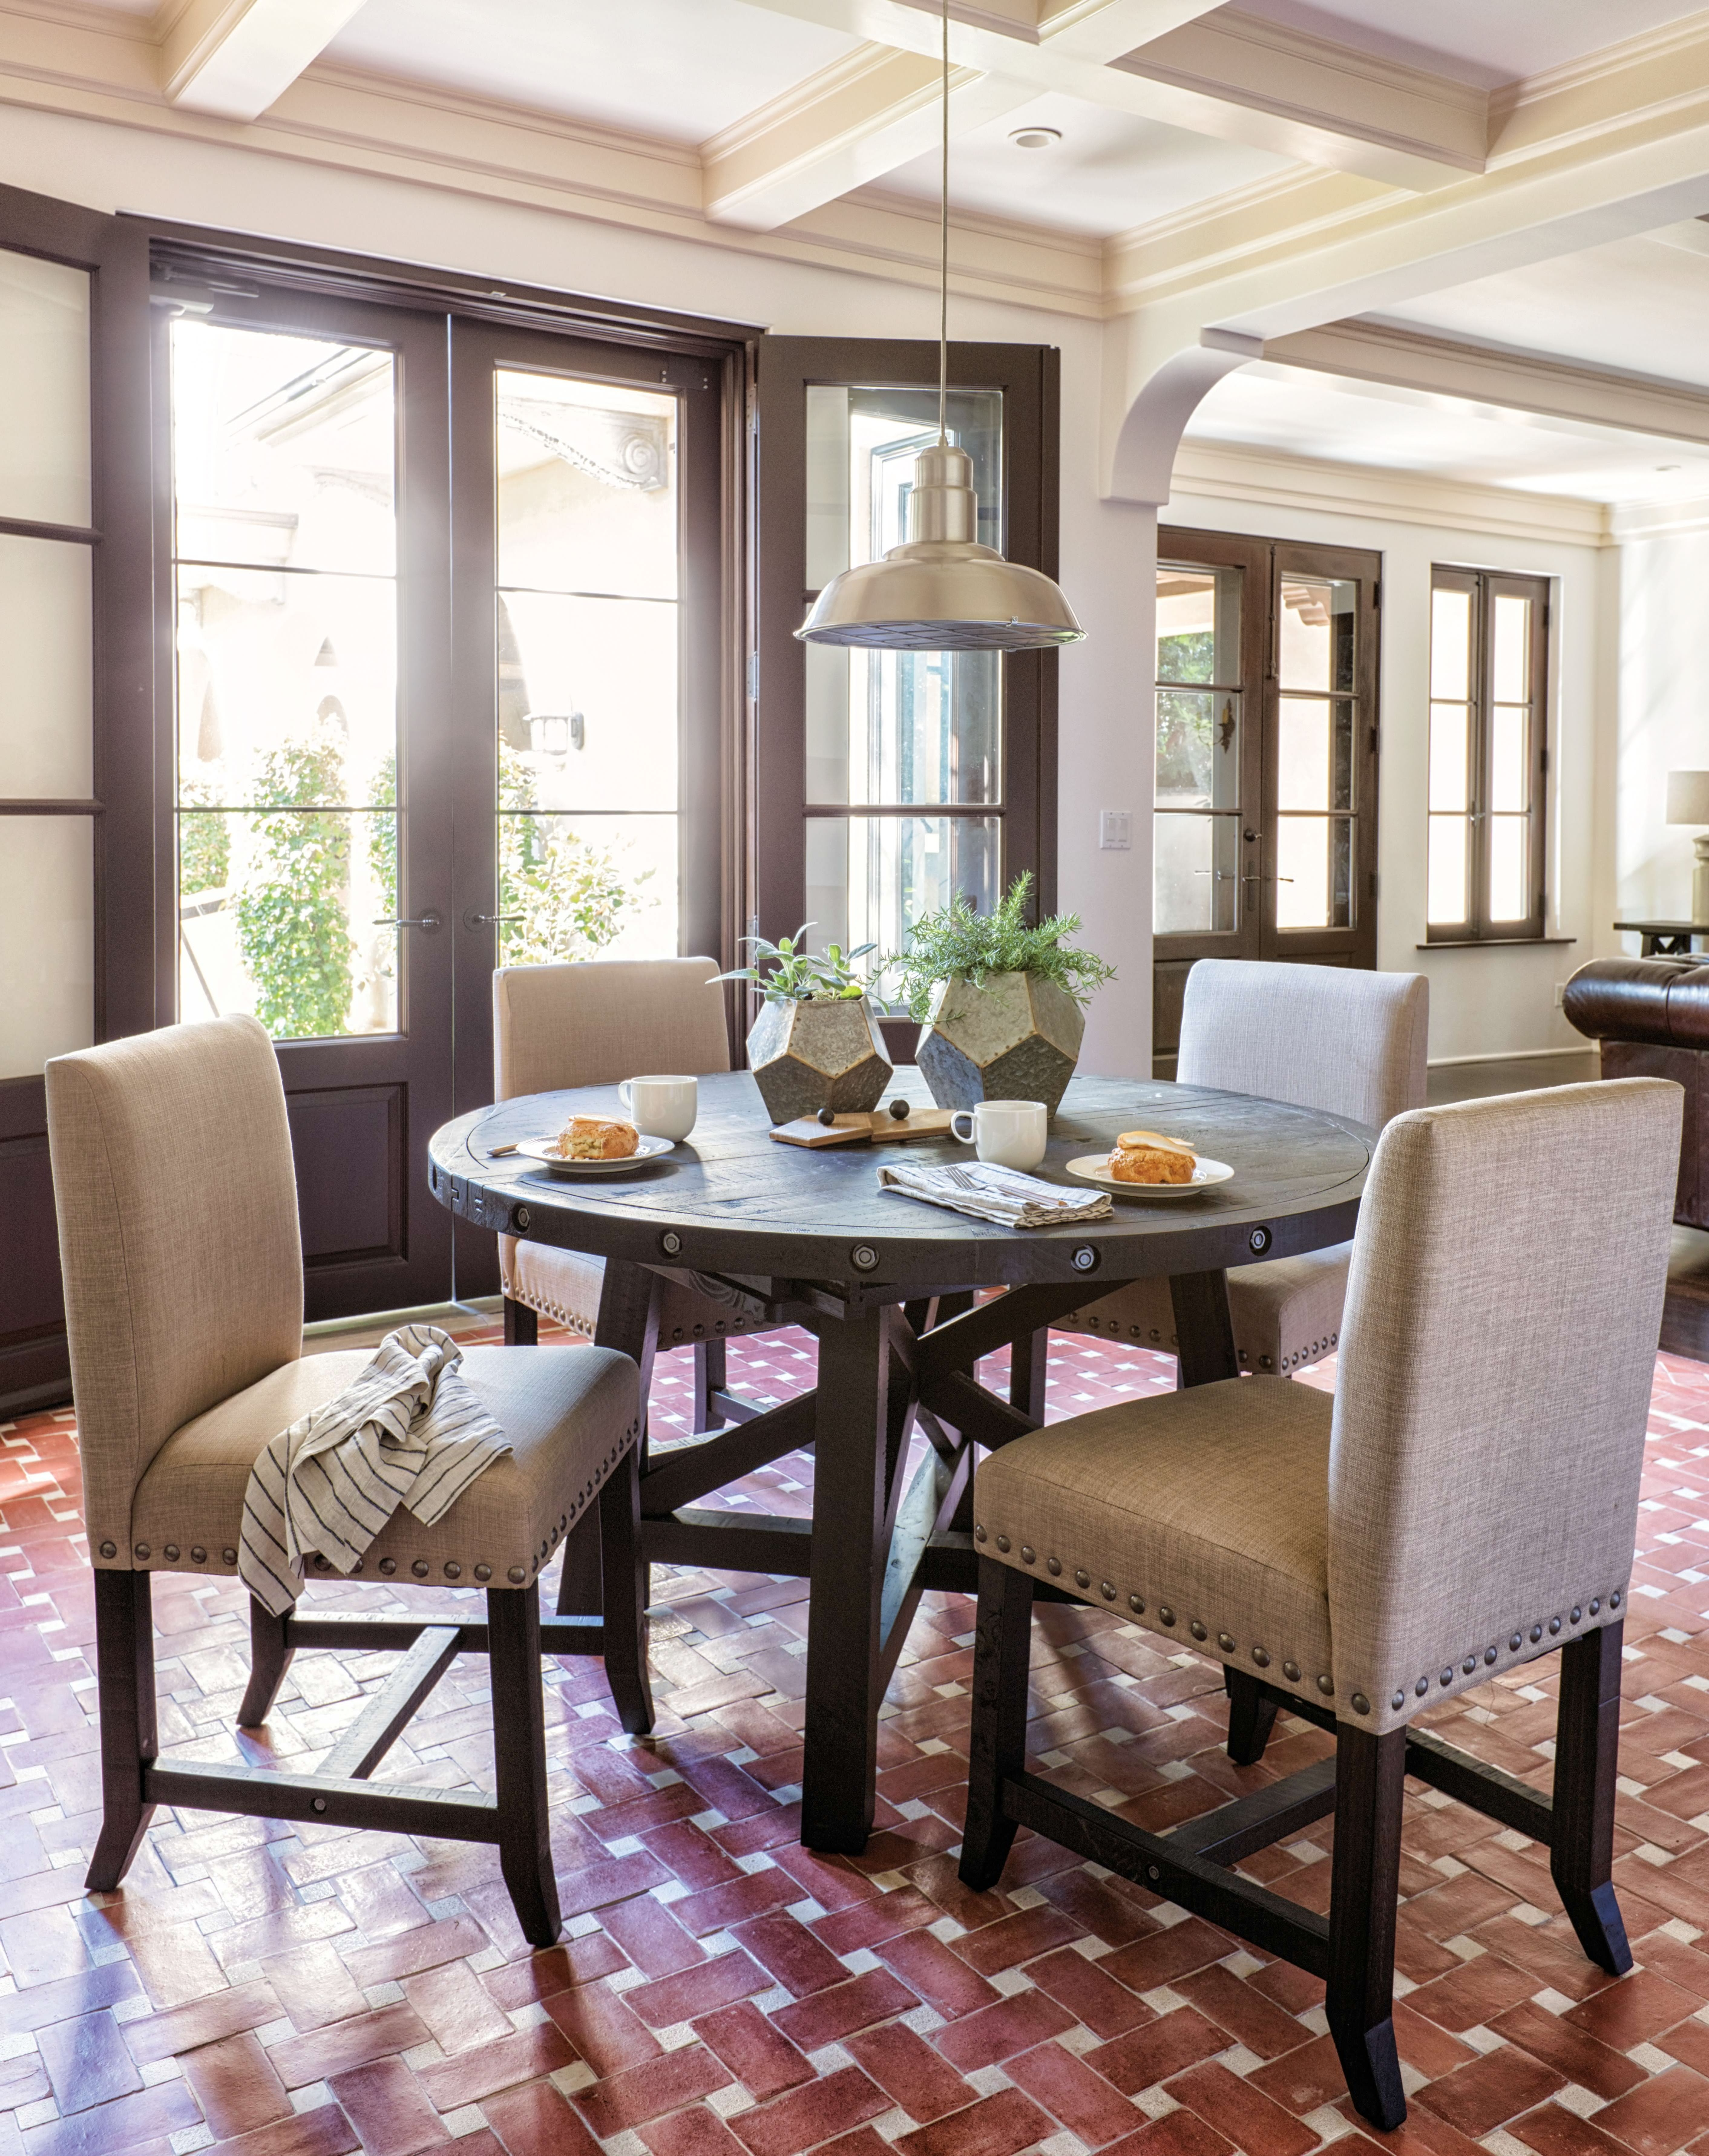 Jaxon 5 Piece Extension Round Dining Sets With Wood Chairs Within Well Known Jaxon 5 Piece Round Dining Set (View 11 of 25)